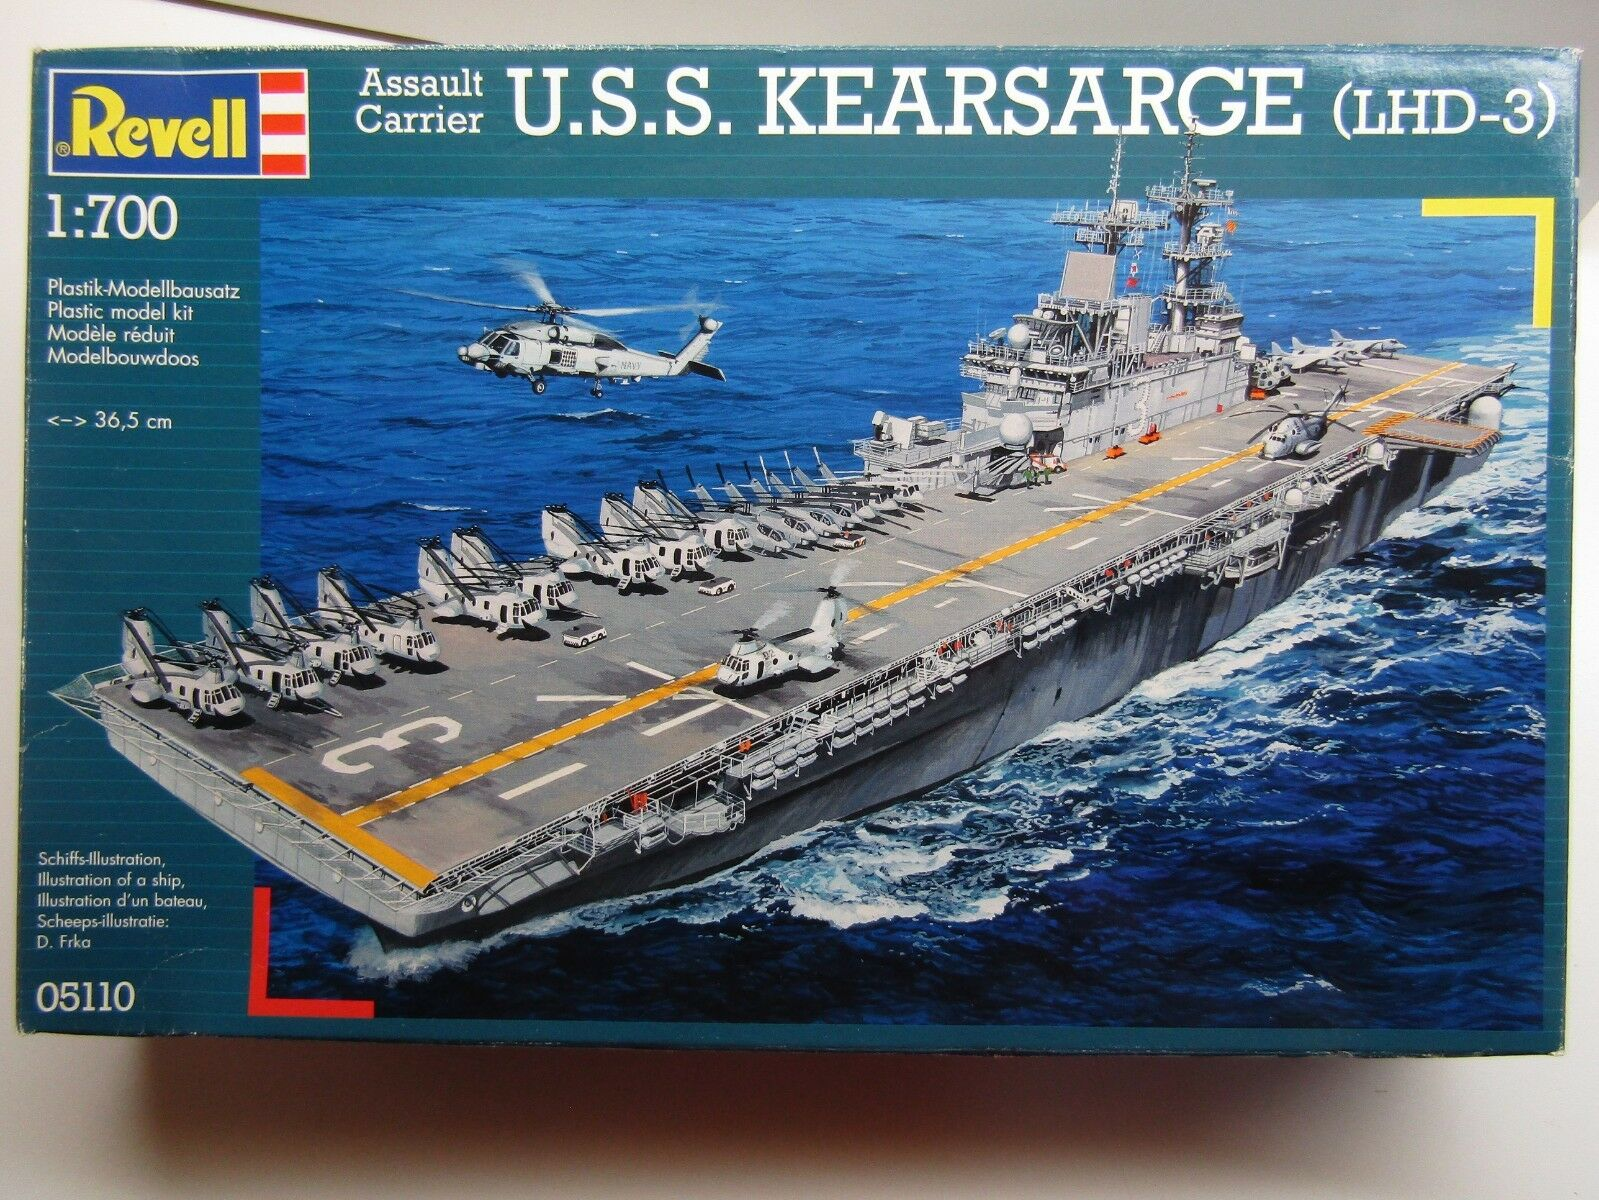 Revell 1 700 Scale U.S.S. Kearsarge (LHD-3) Carrier Model Kit New - Kit